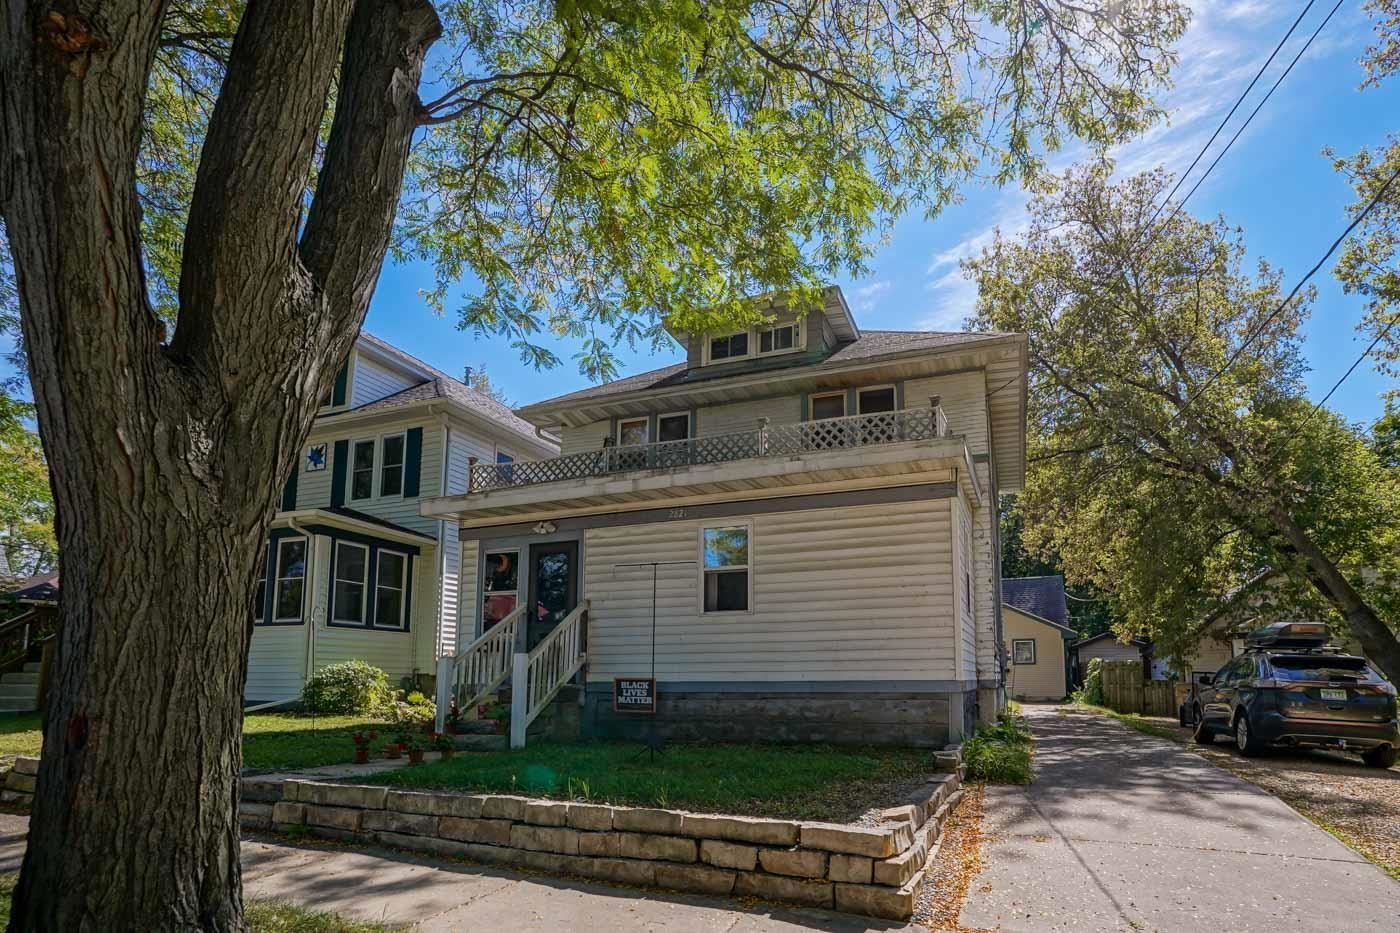 Photo for 2821 & 2821 1/2 Union St, Madison, WI 53704 (MLS # 1921404)